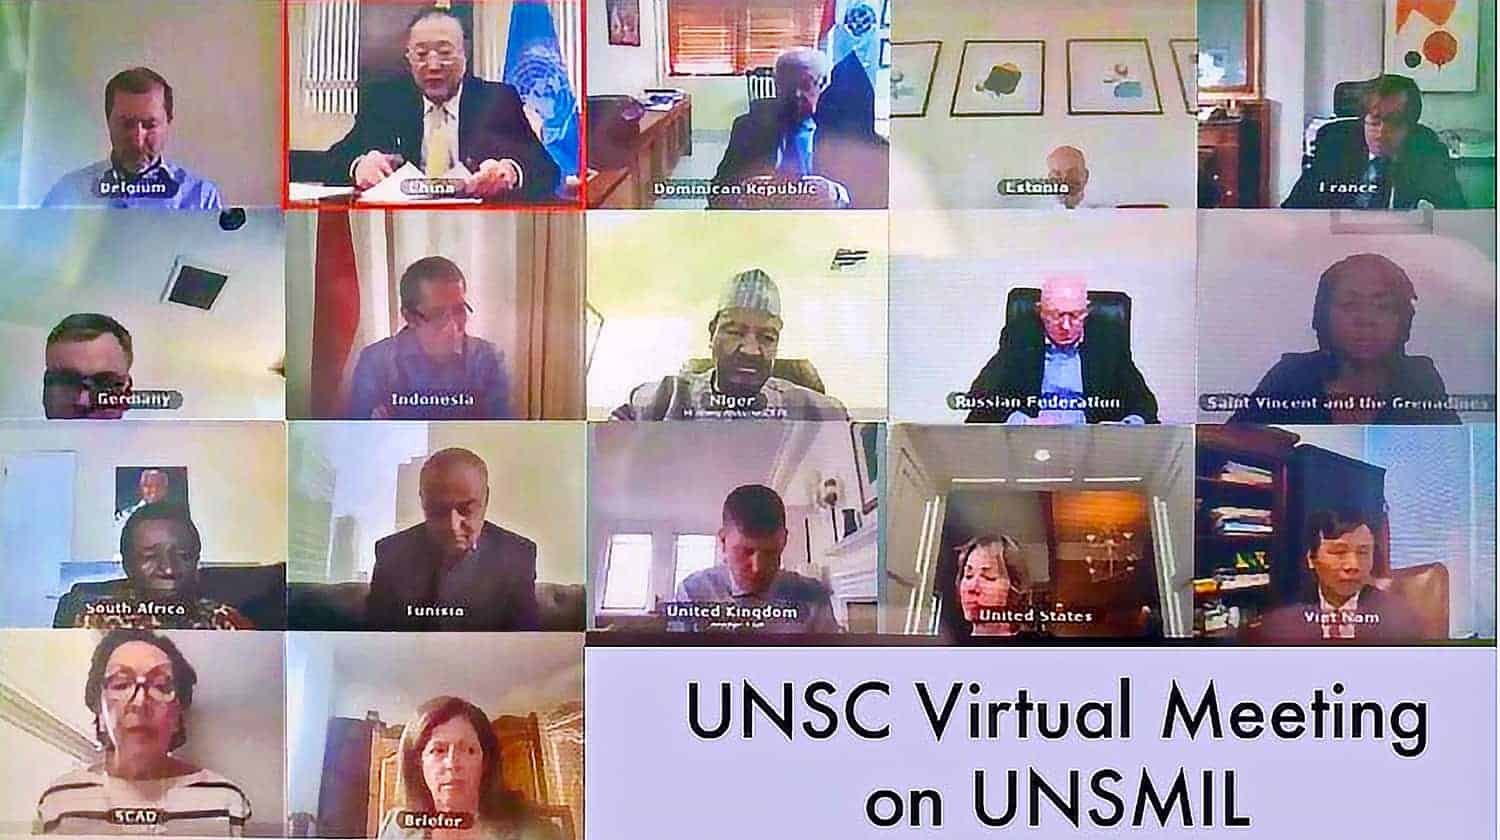 United Nations Security Council Virtual Meeting